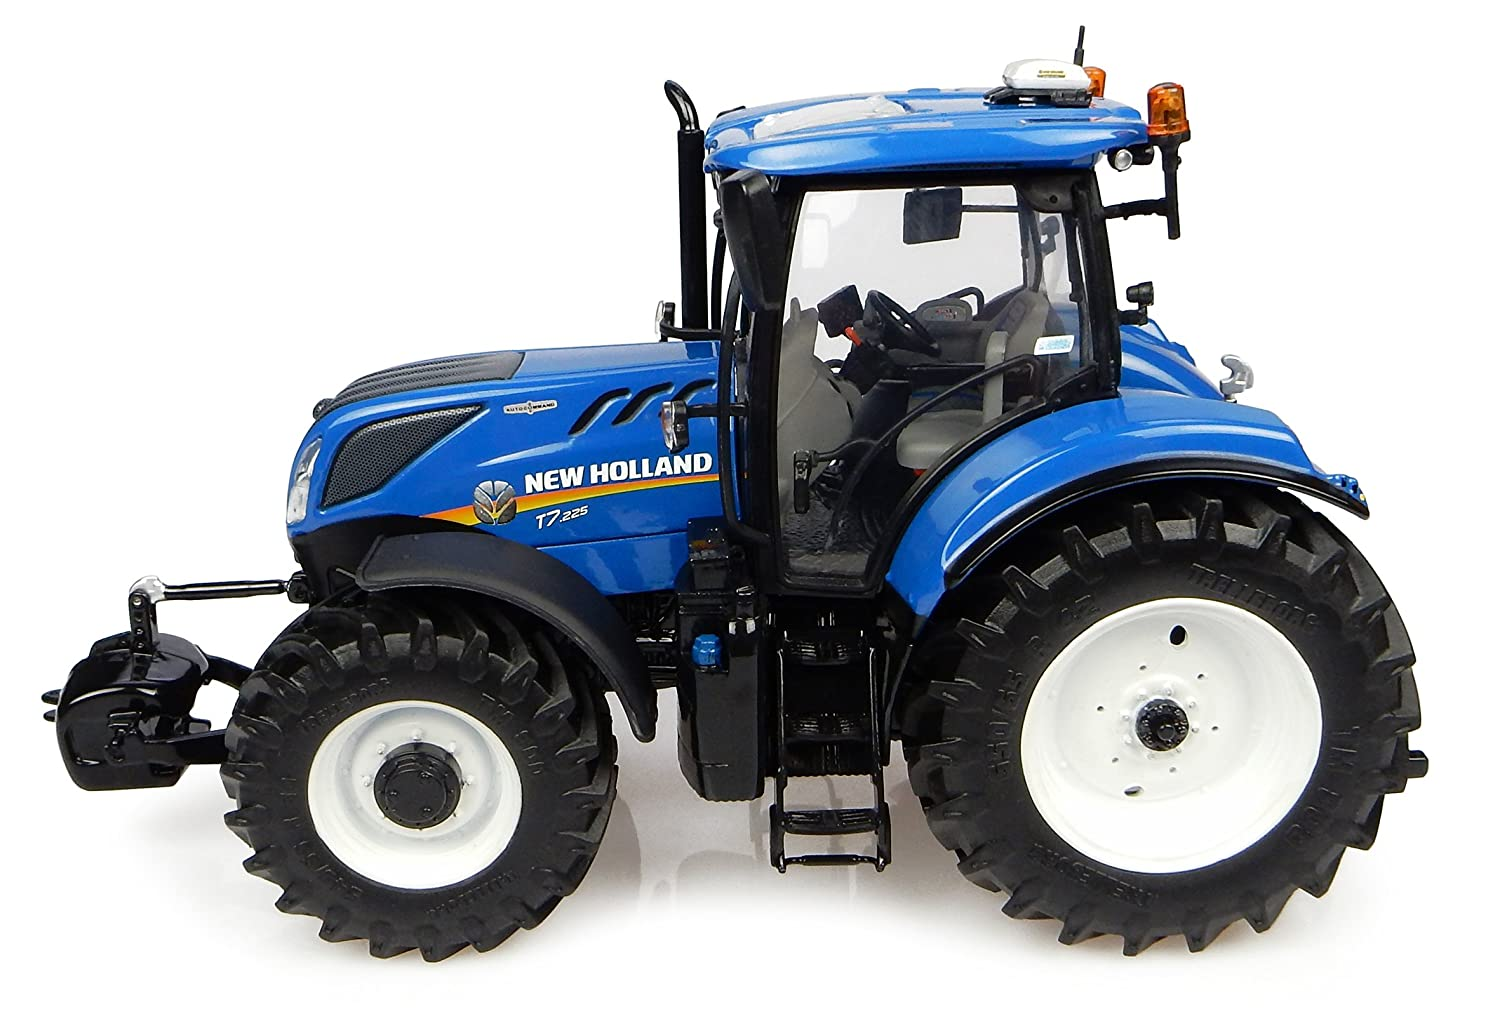 Universal Hobbies - UH 4893 - Tractor - New Holland T7 225